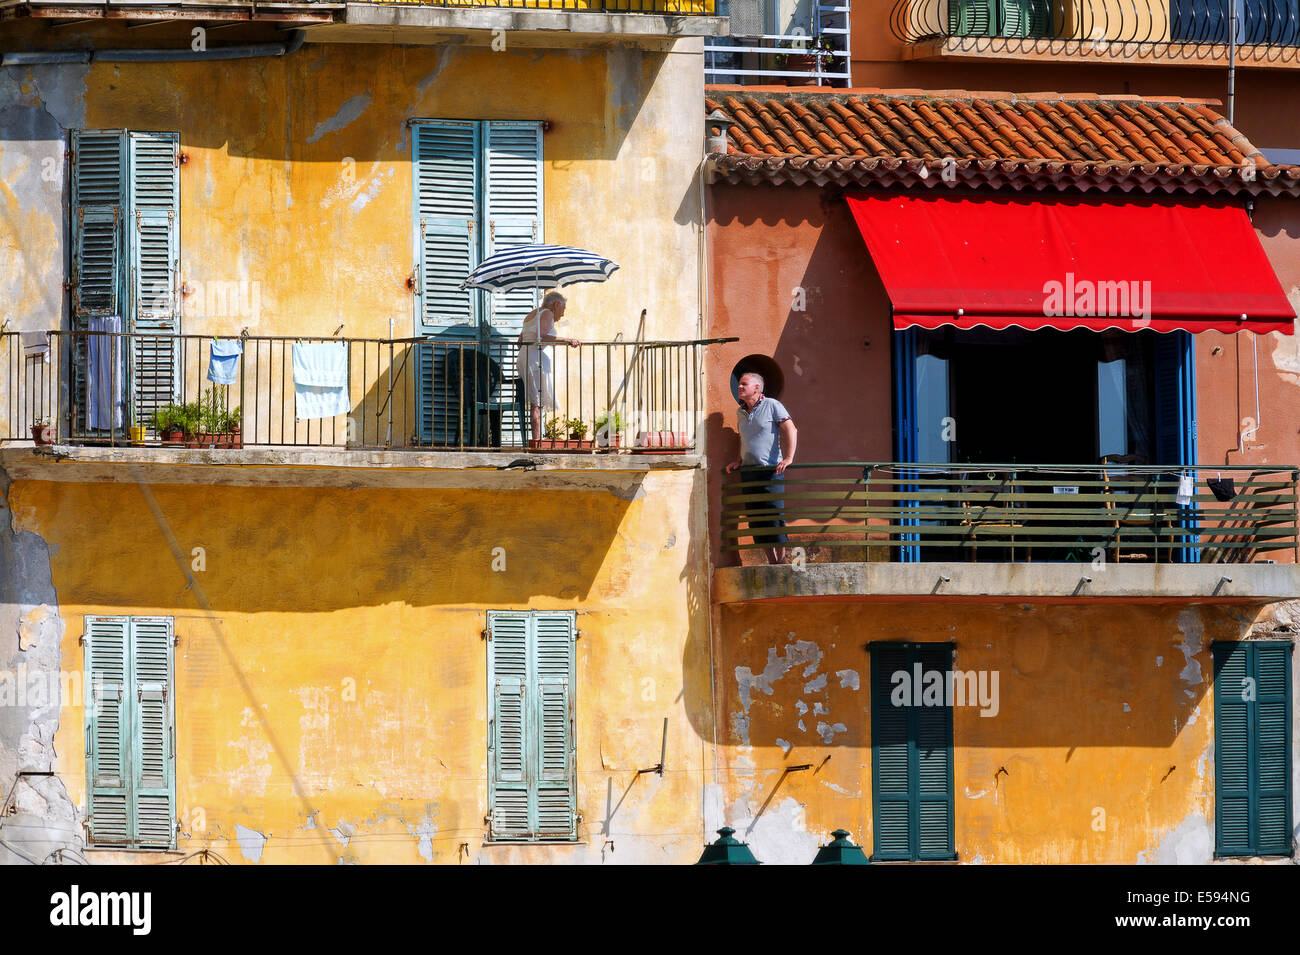 Europe, France, Alpes-Maritimes, Villefrance-sur-Mer. The discuss. Stock Photo